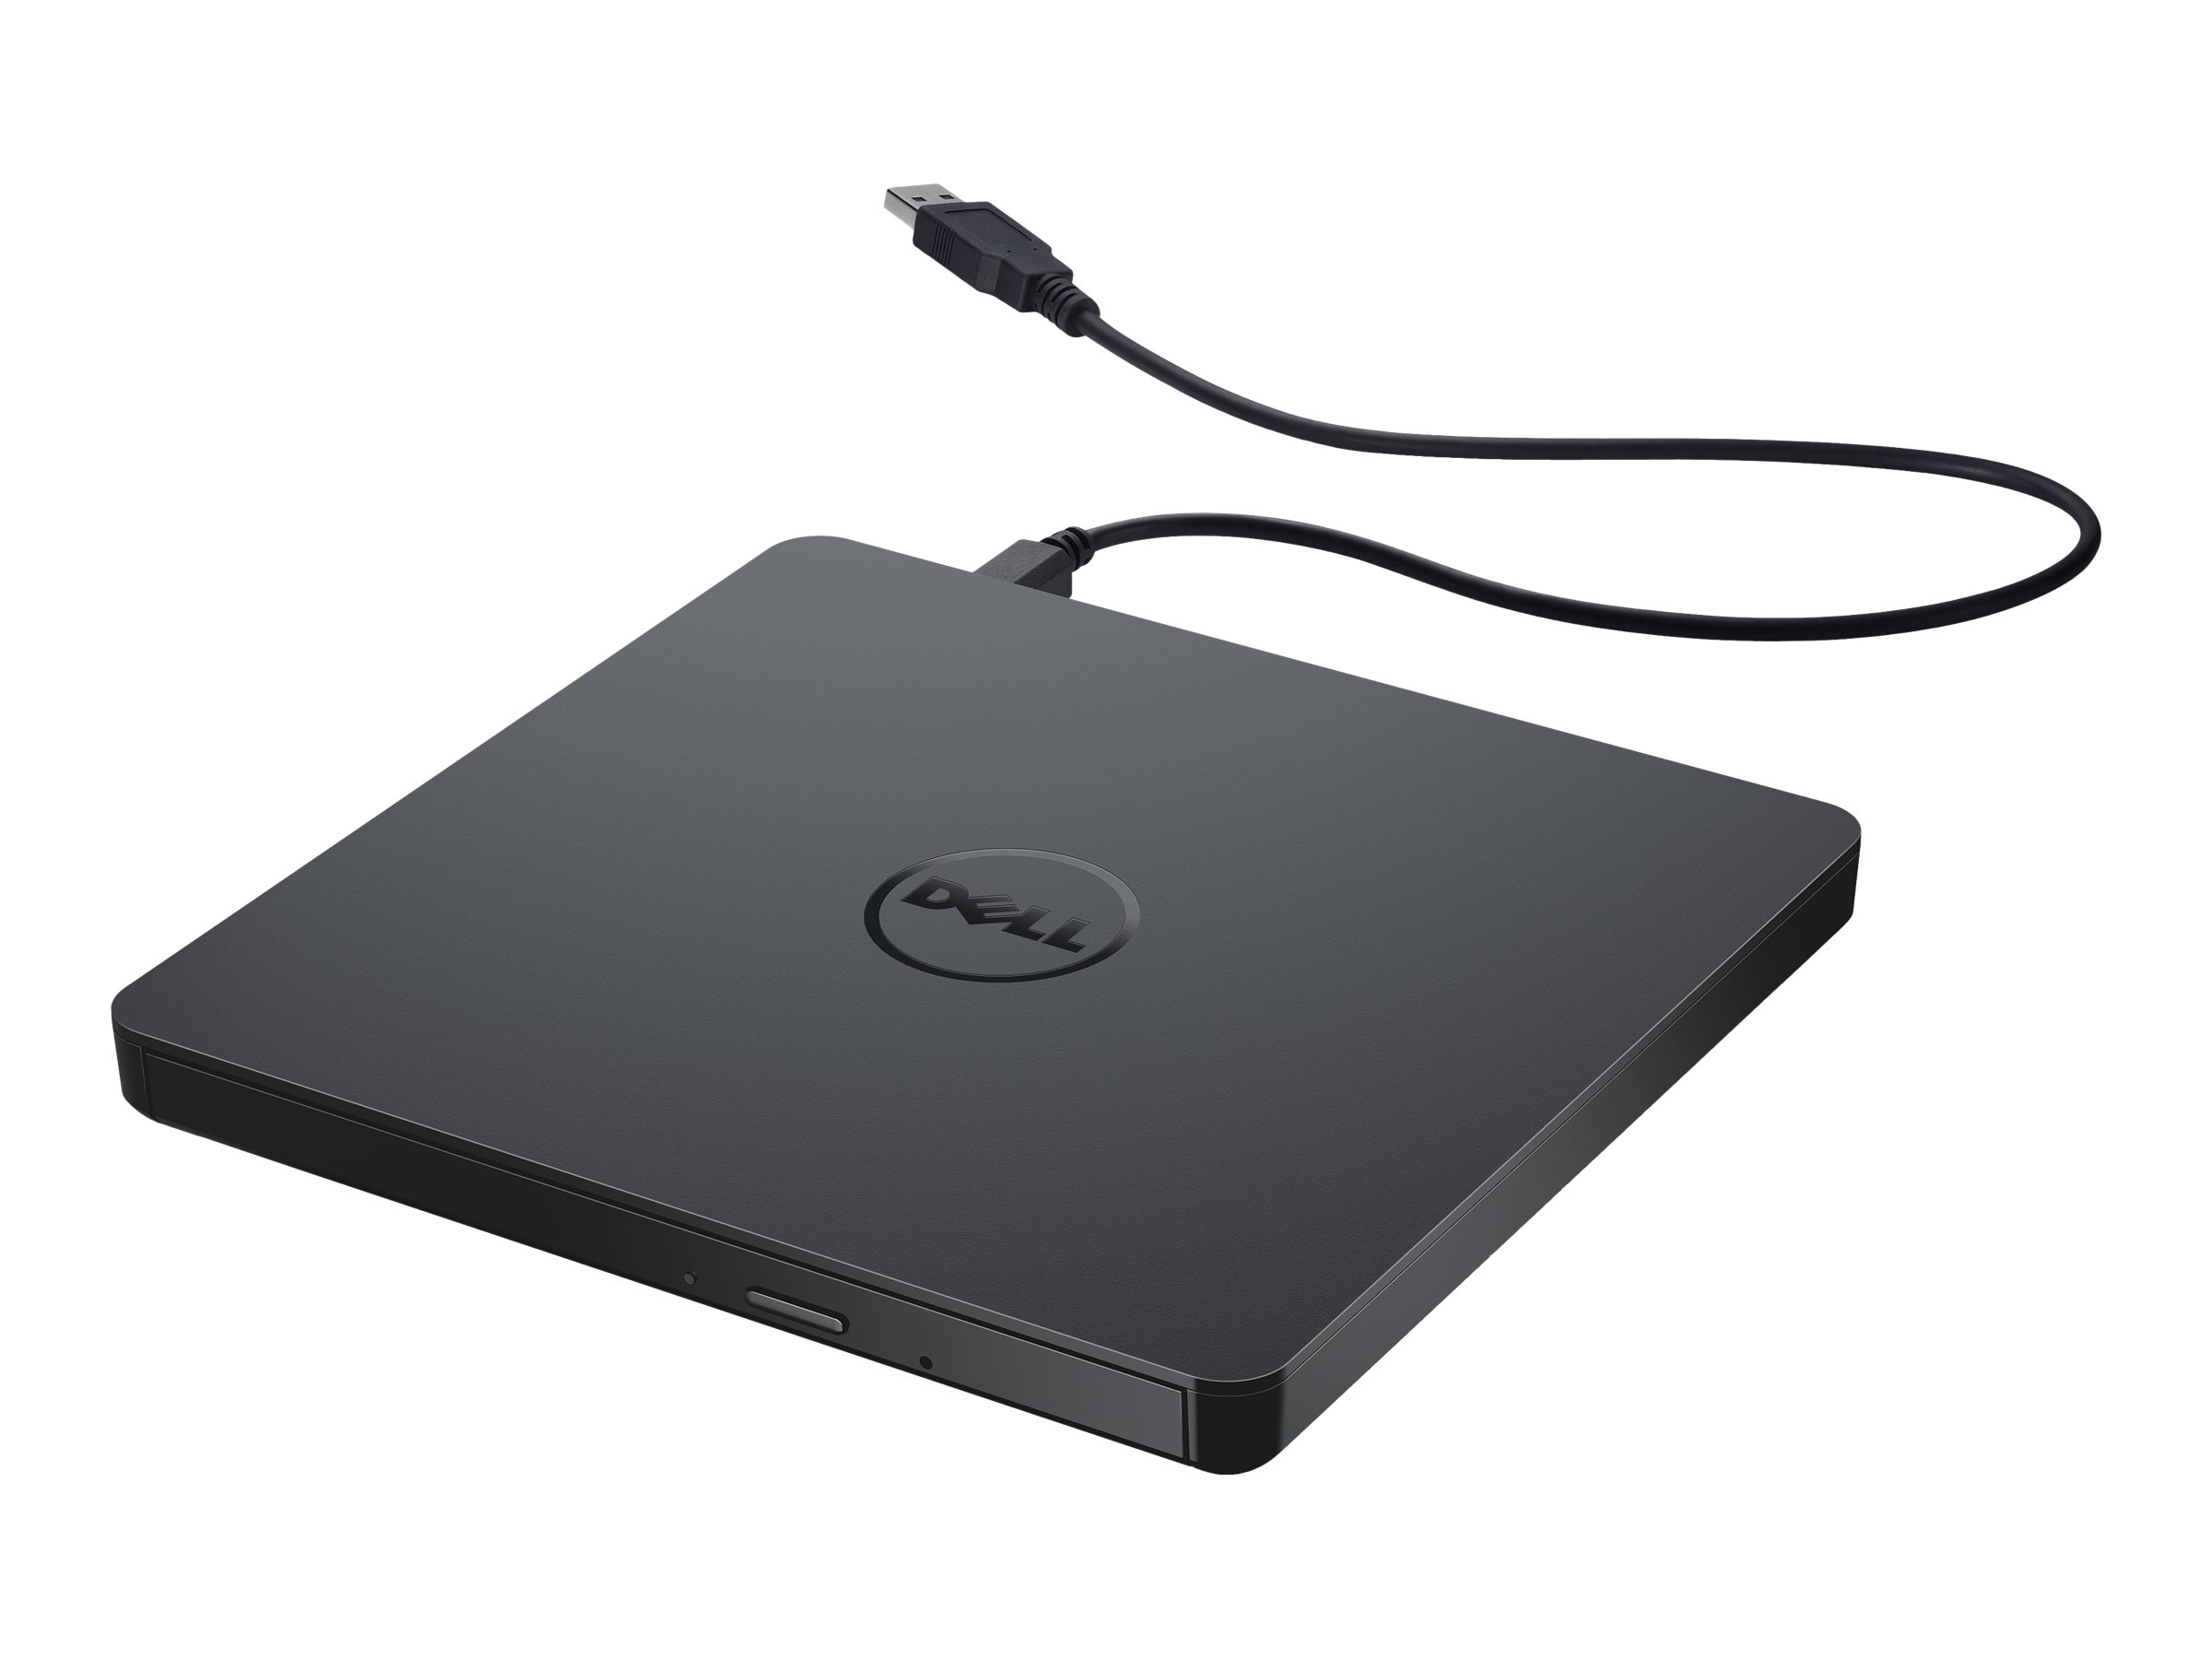 Dell Slim DW316 - DVD±RW (±R DL) / DVD-RAM drive - USB 2.0 - external